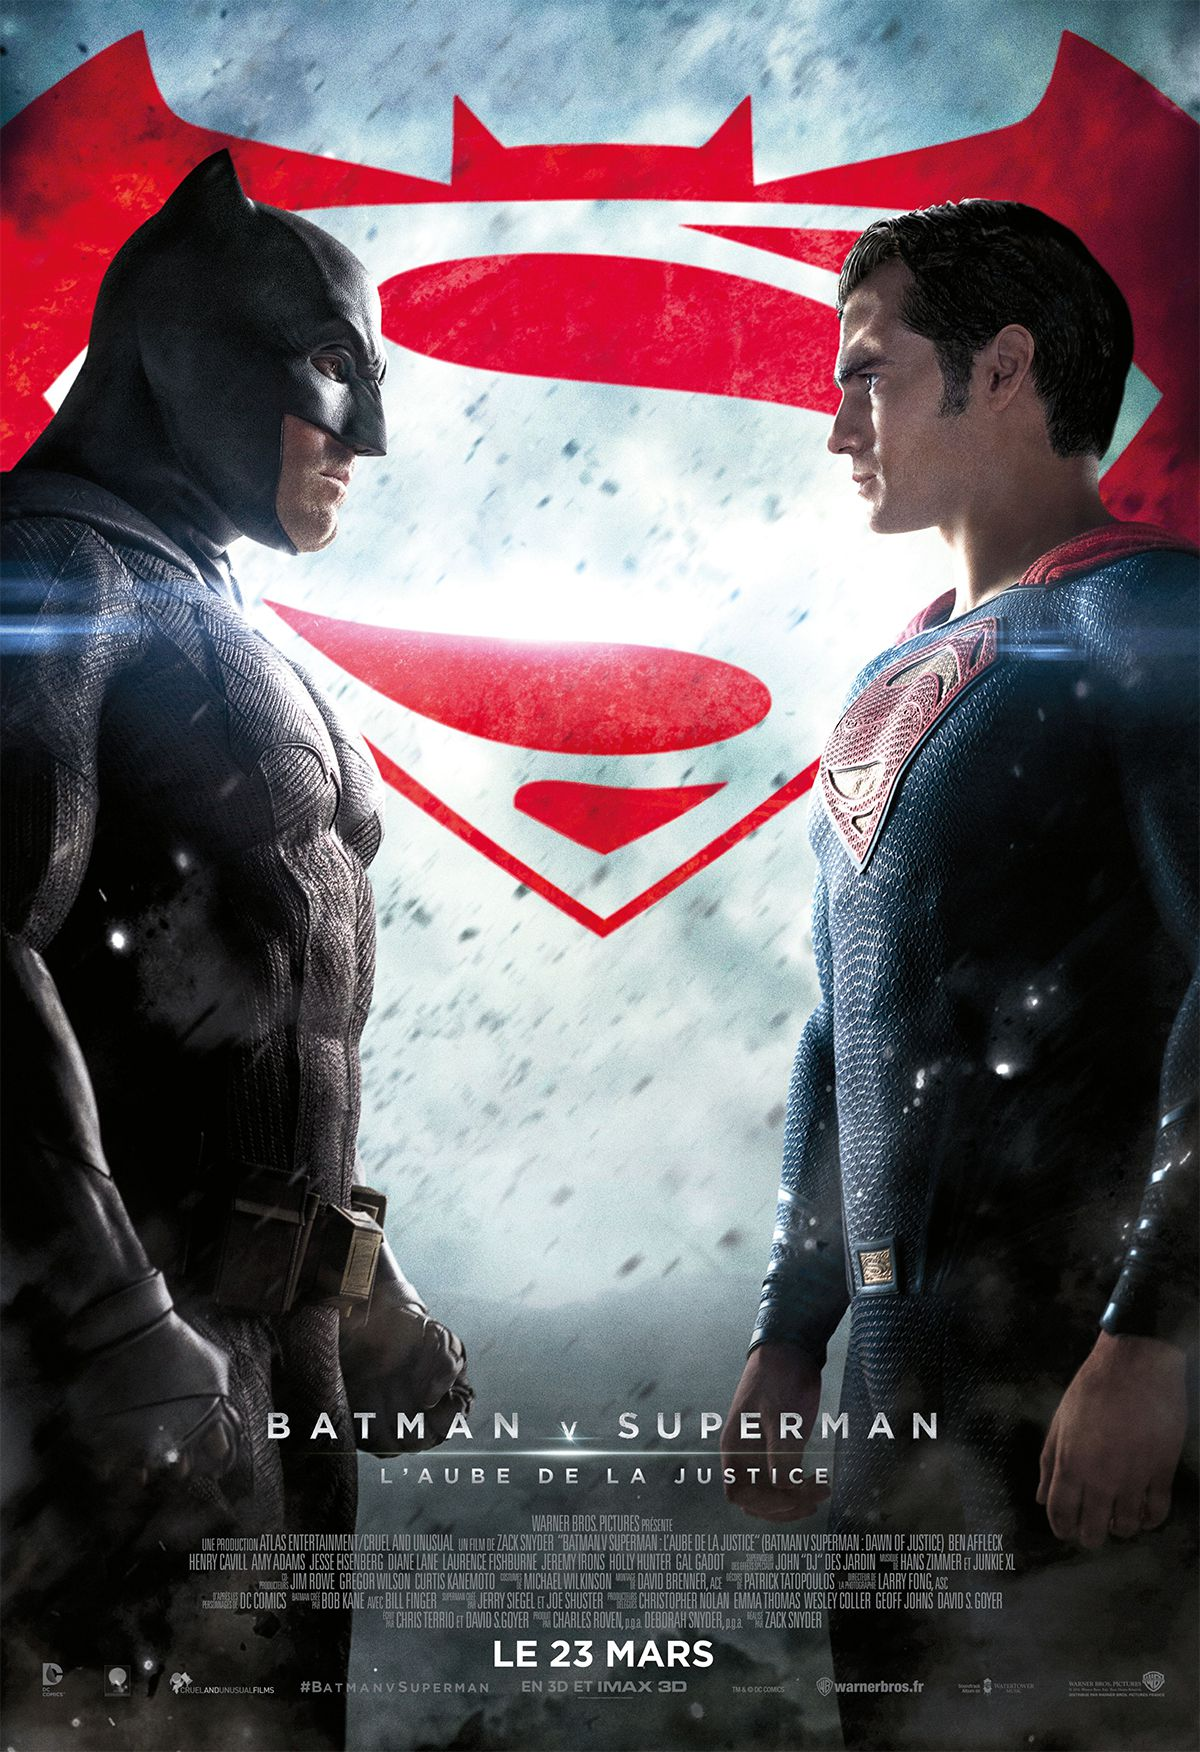 Batman v Superman : L'Aube de la Justice - Film (2016) streaming VF gratuit complet